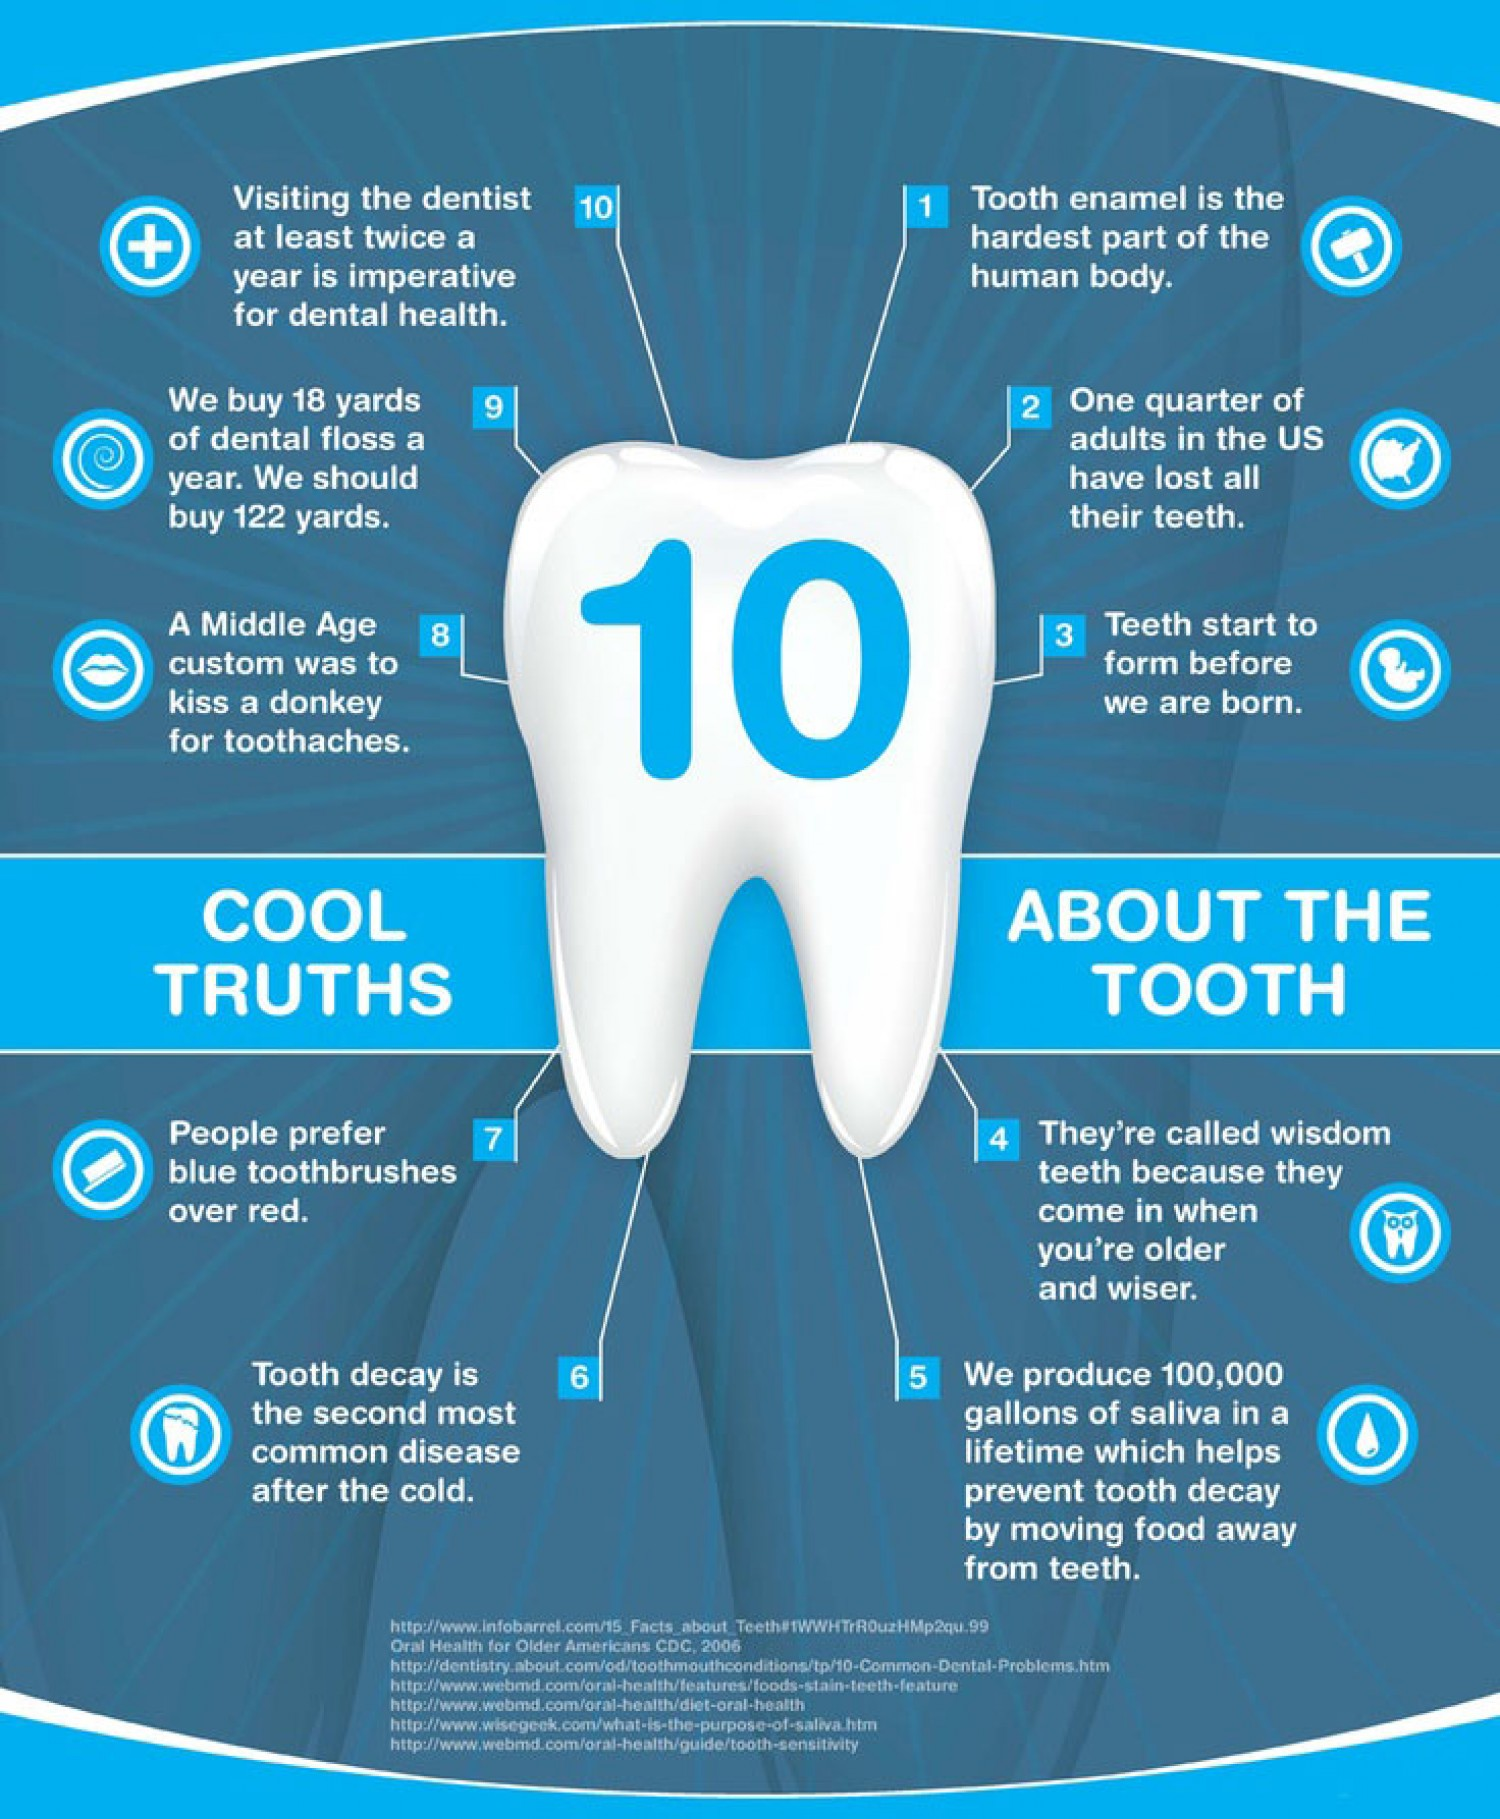 cool-facts-about-your-tooth_5509da0de161c_w1500.jpg